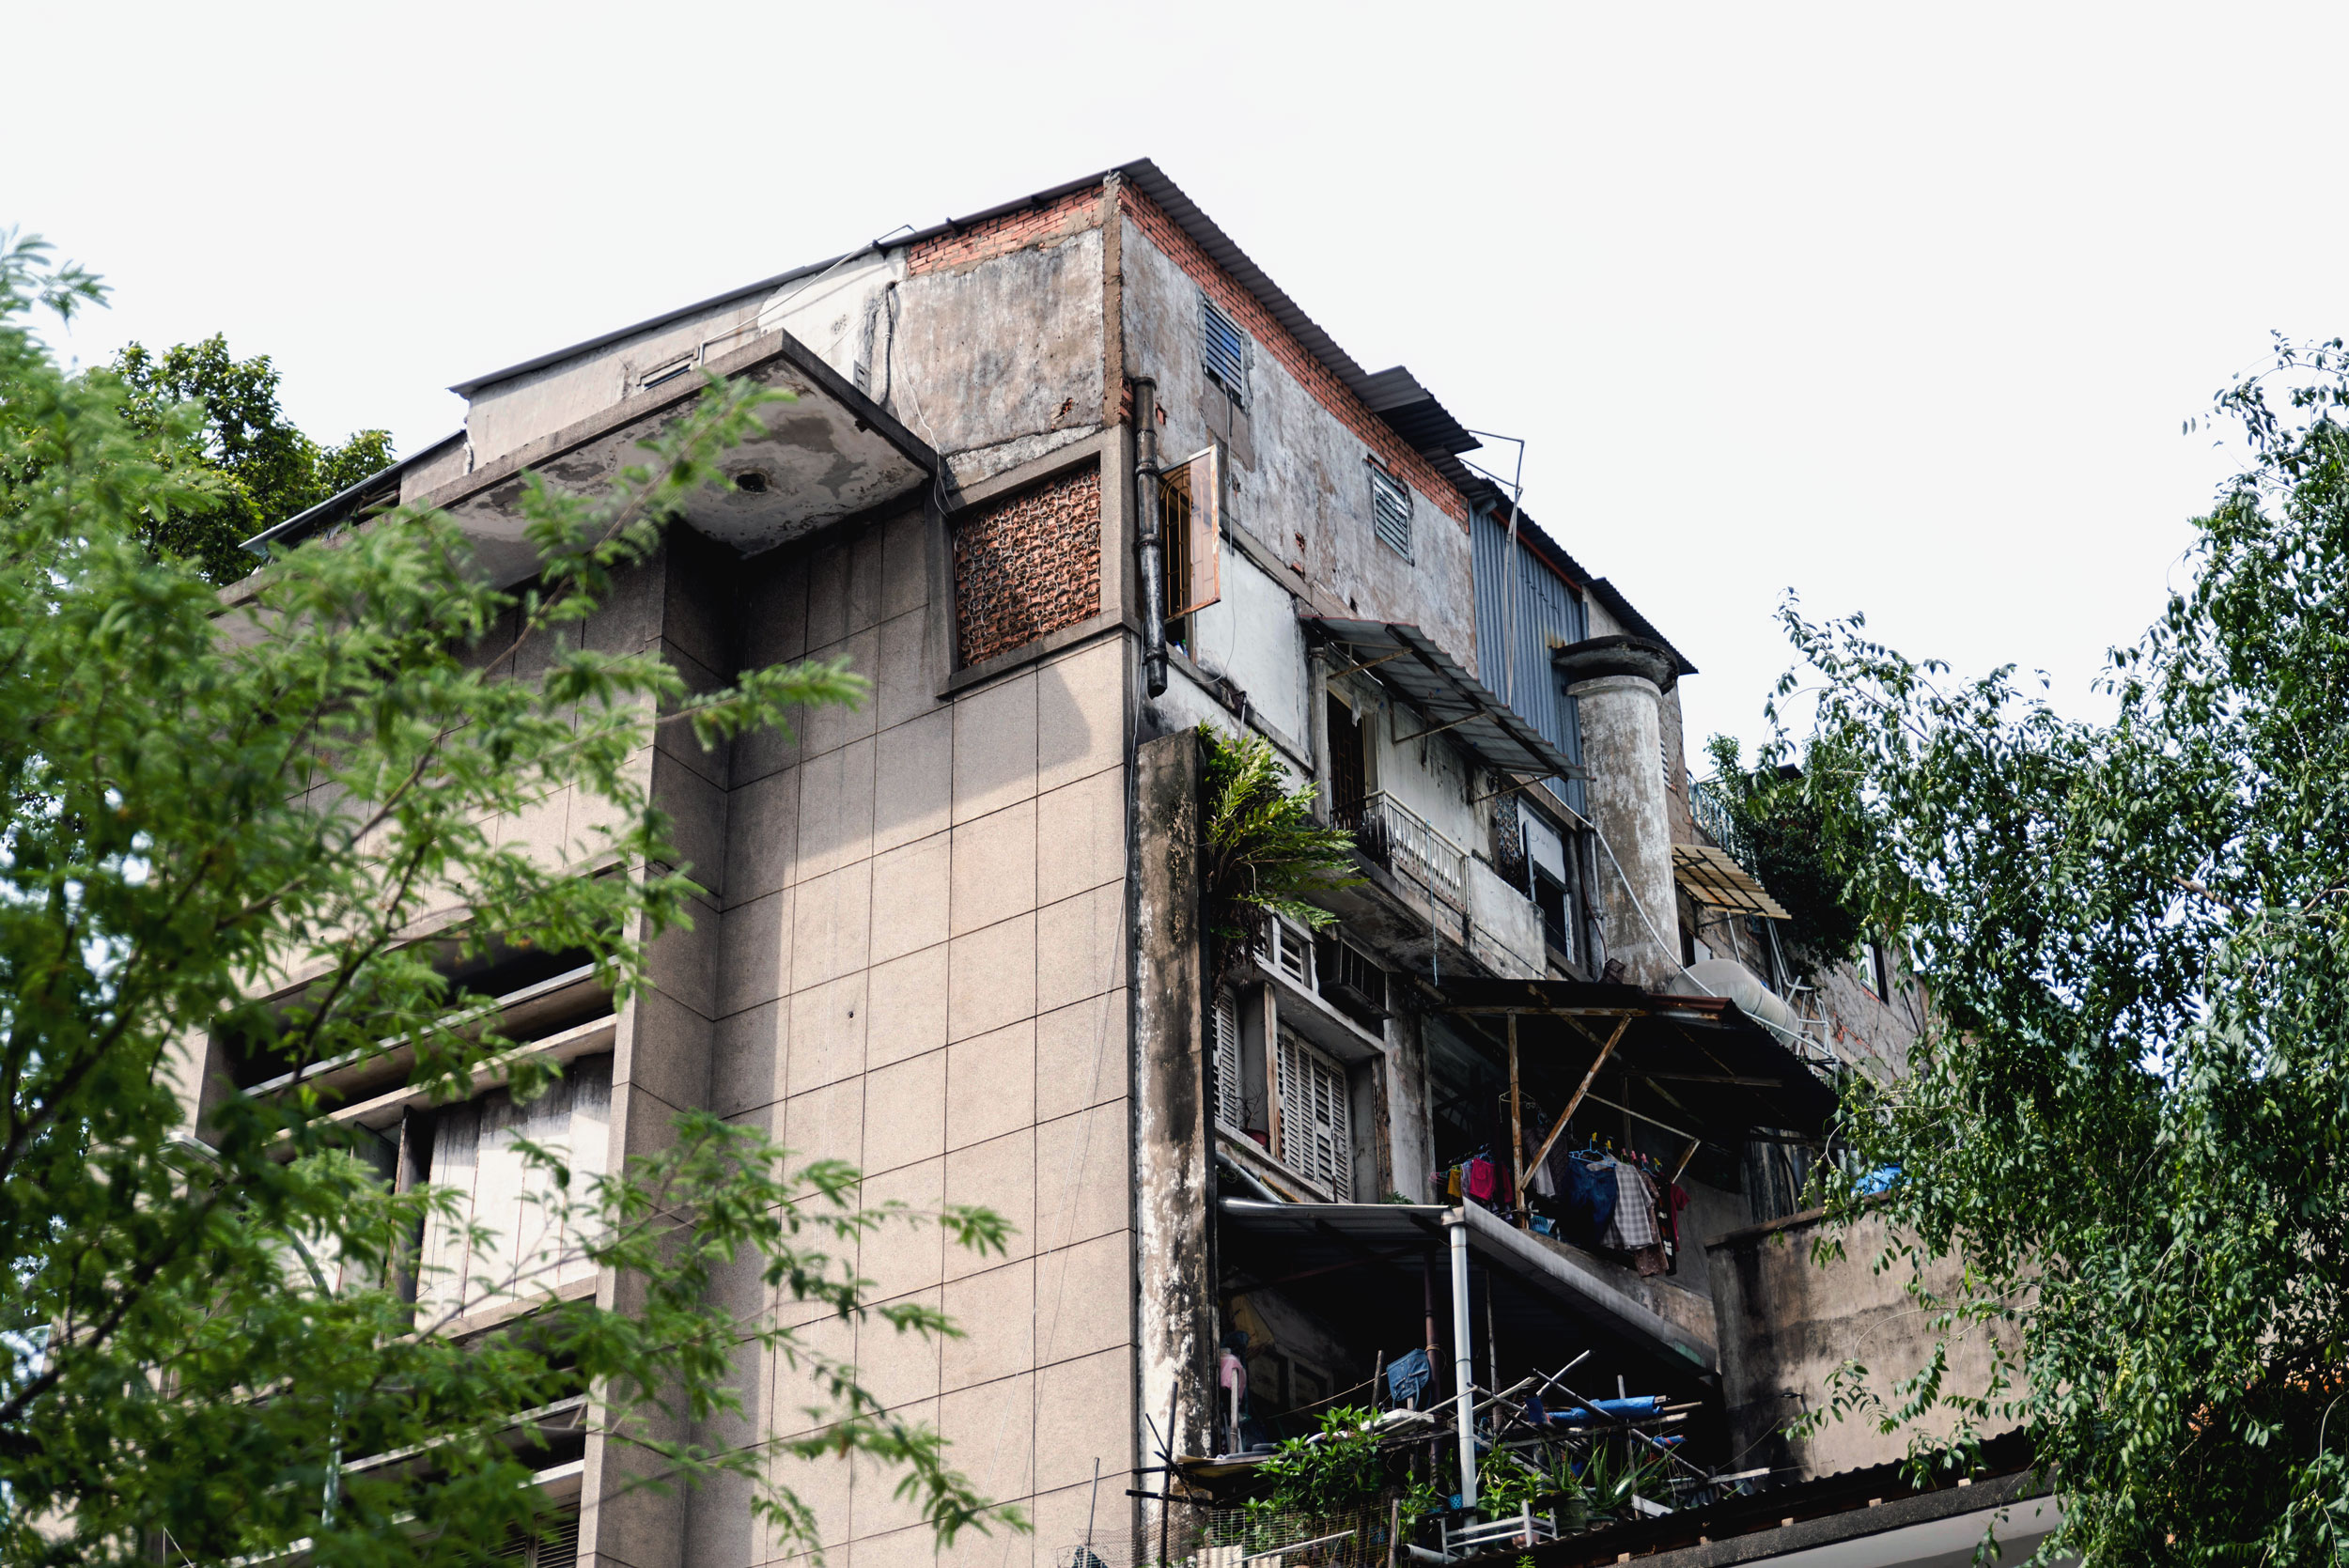 An apartment building in Ho Chi Minh, Vietnam